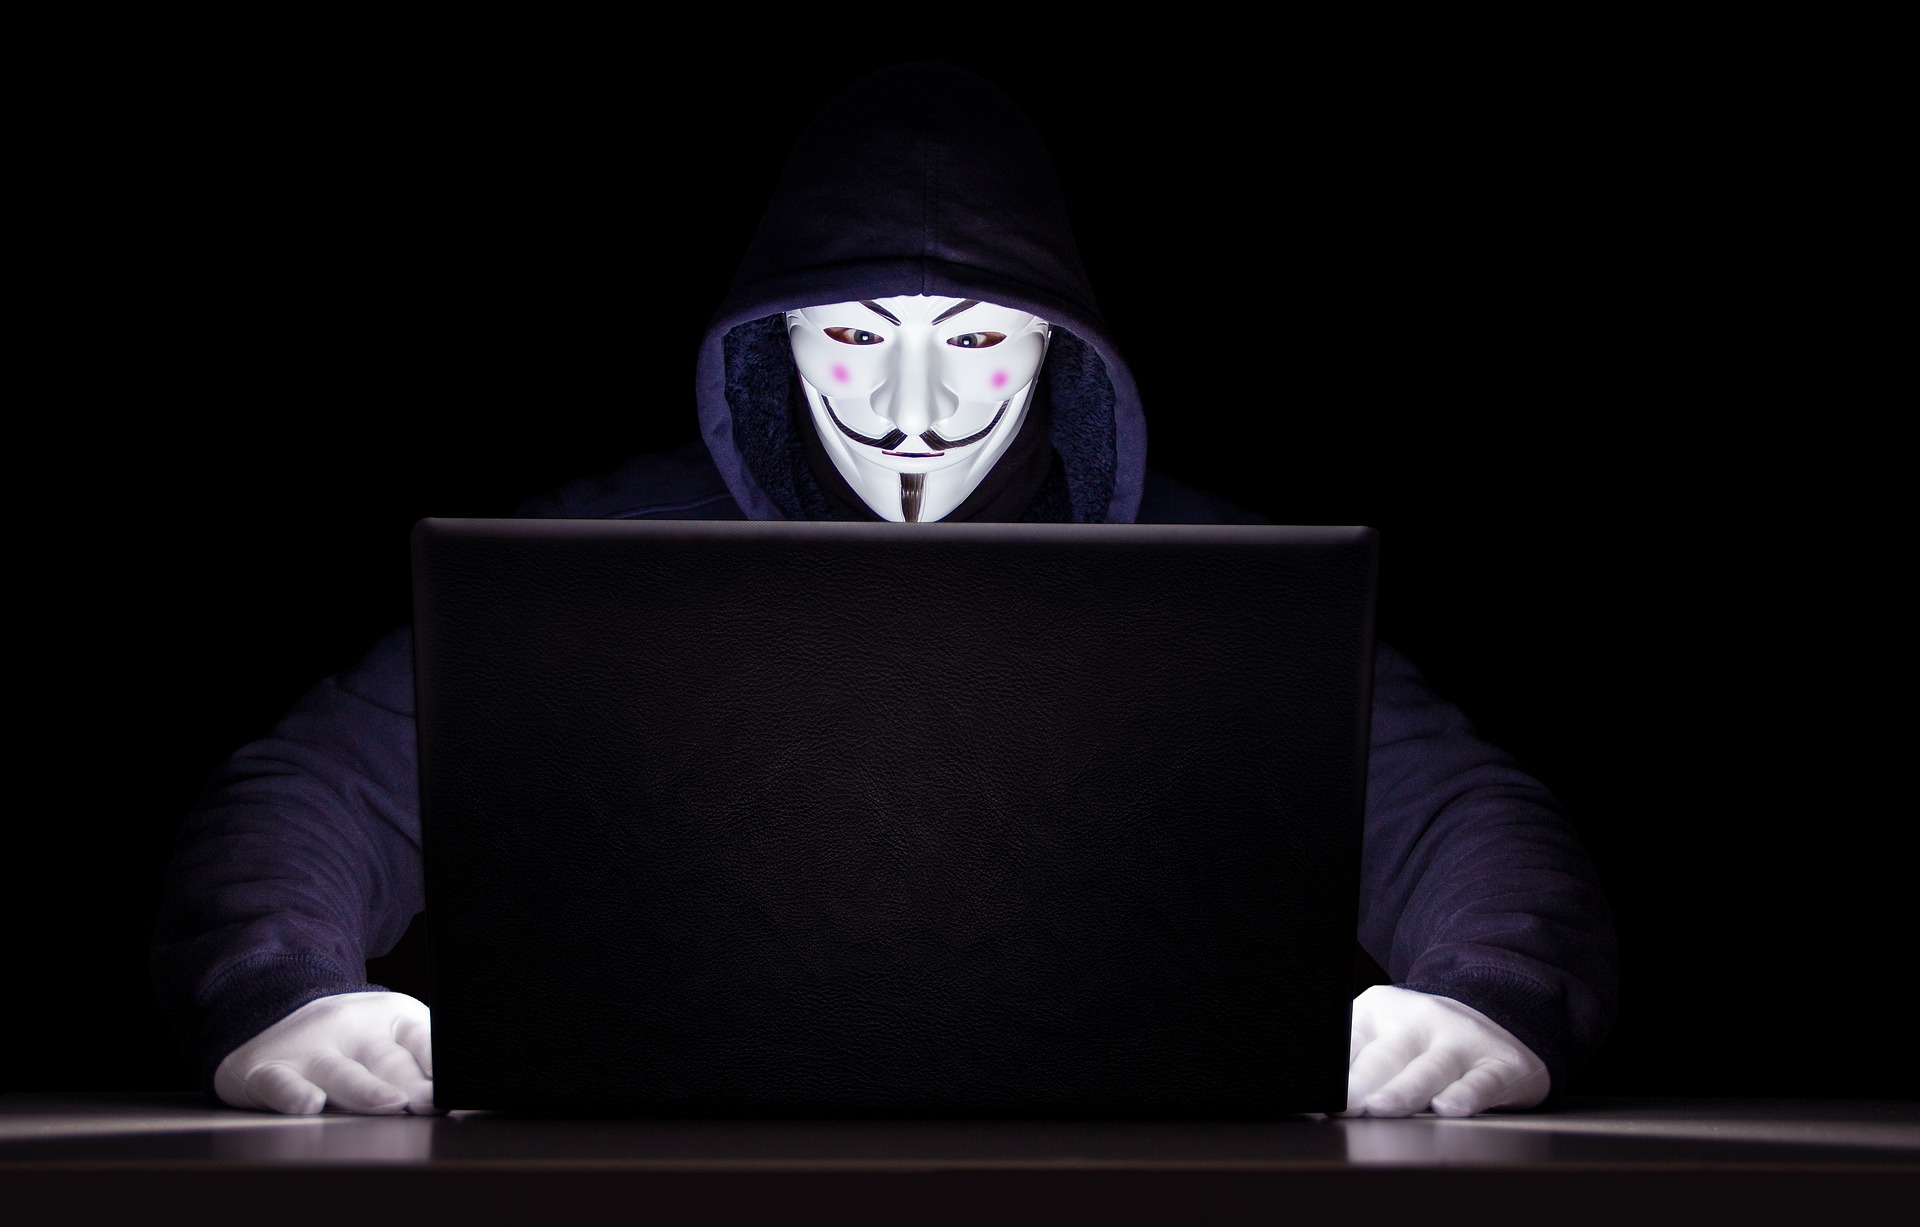 One in 100 Kenyans and Nigerians affected by Spy Software